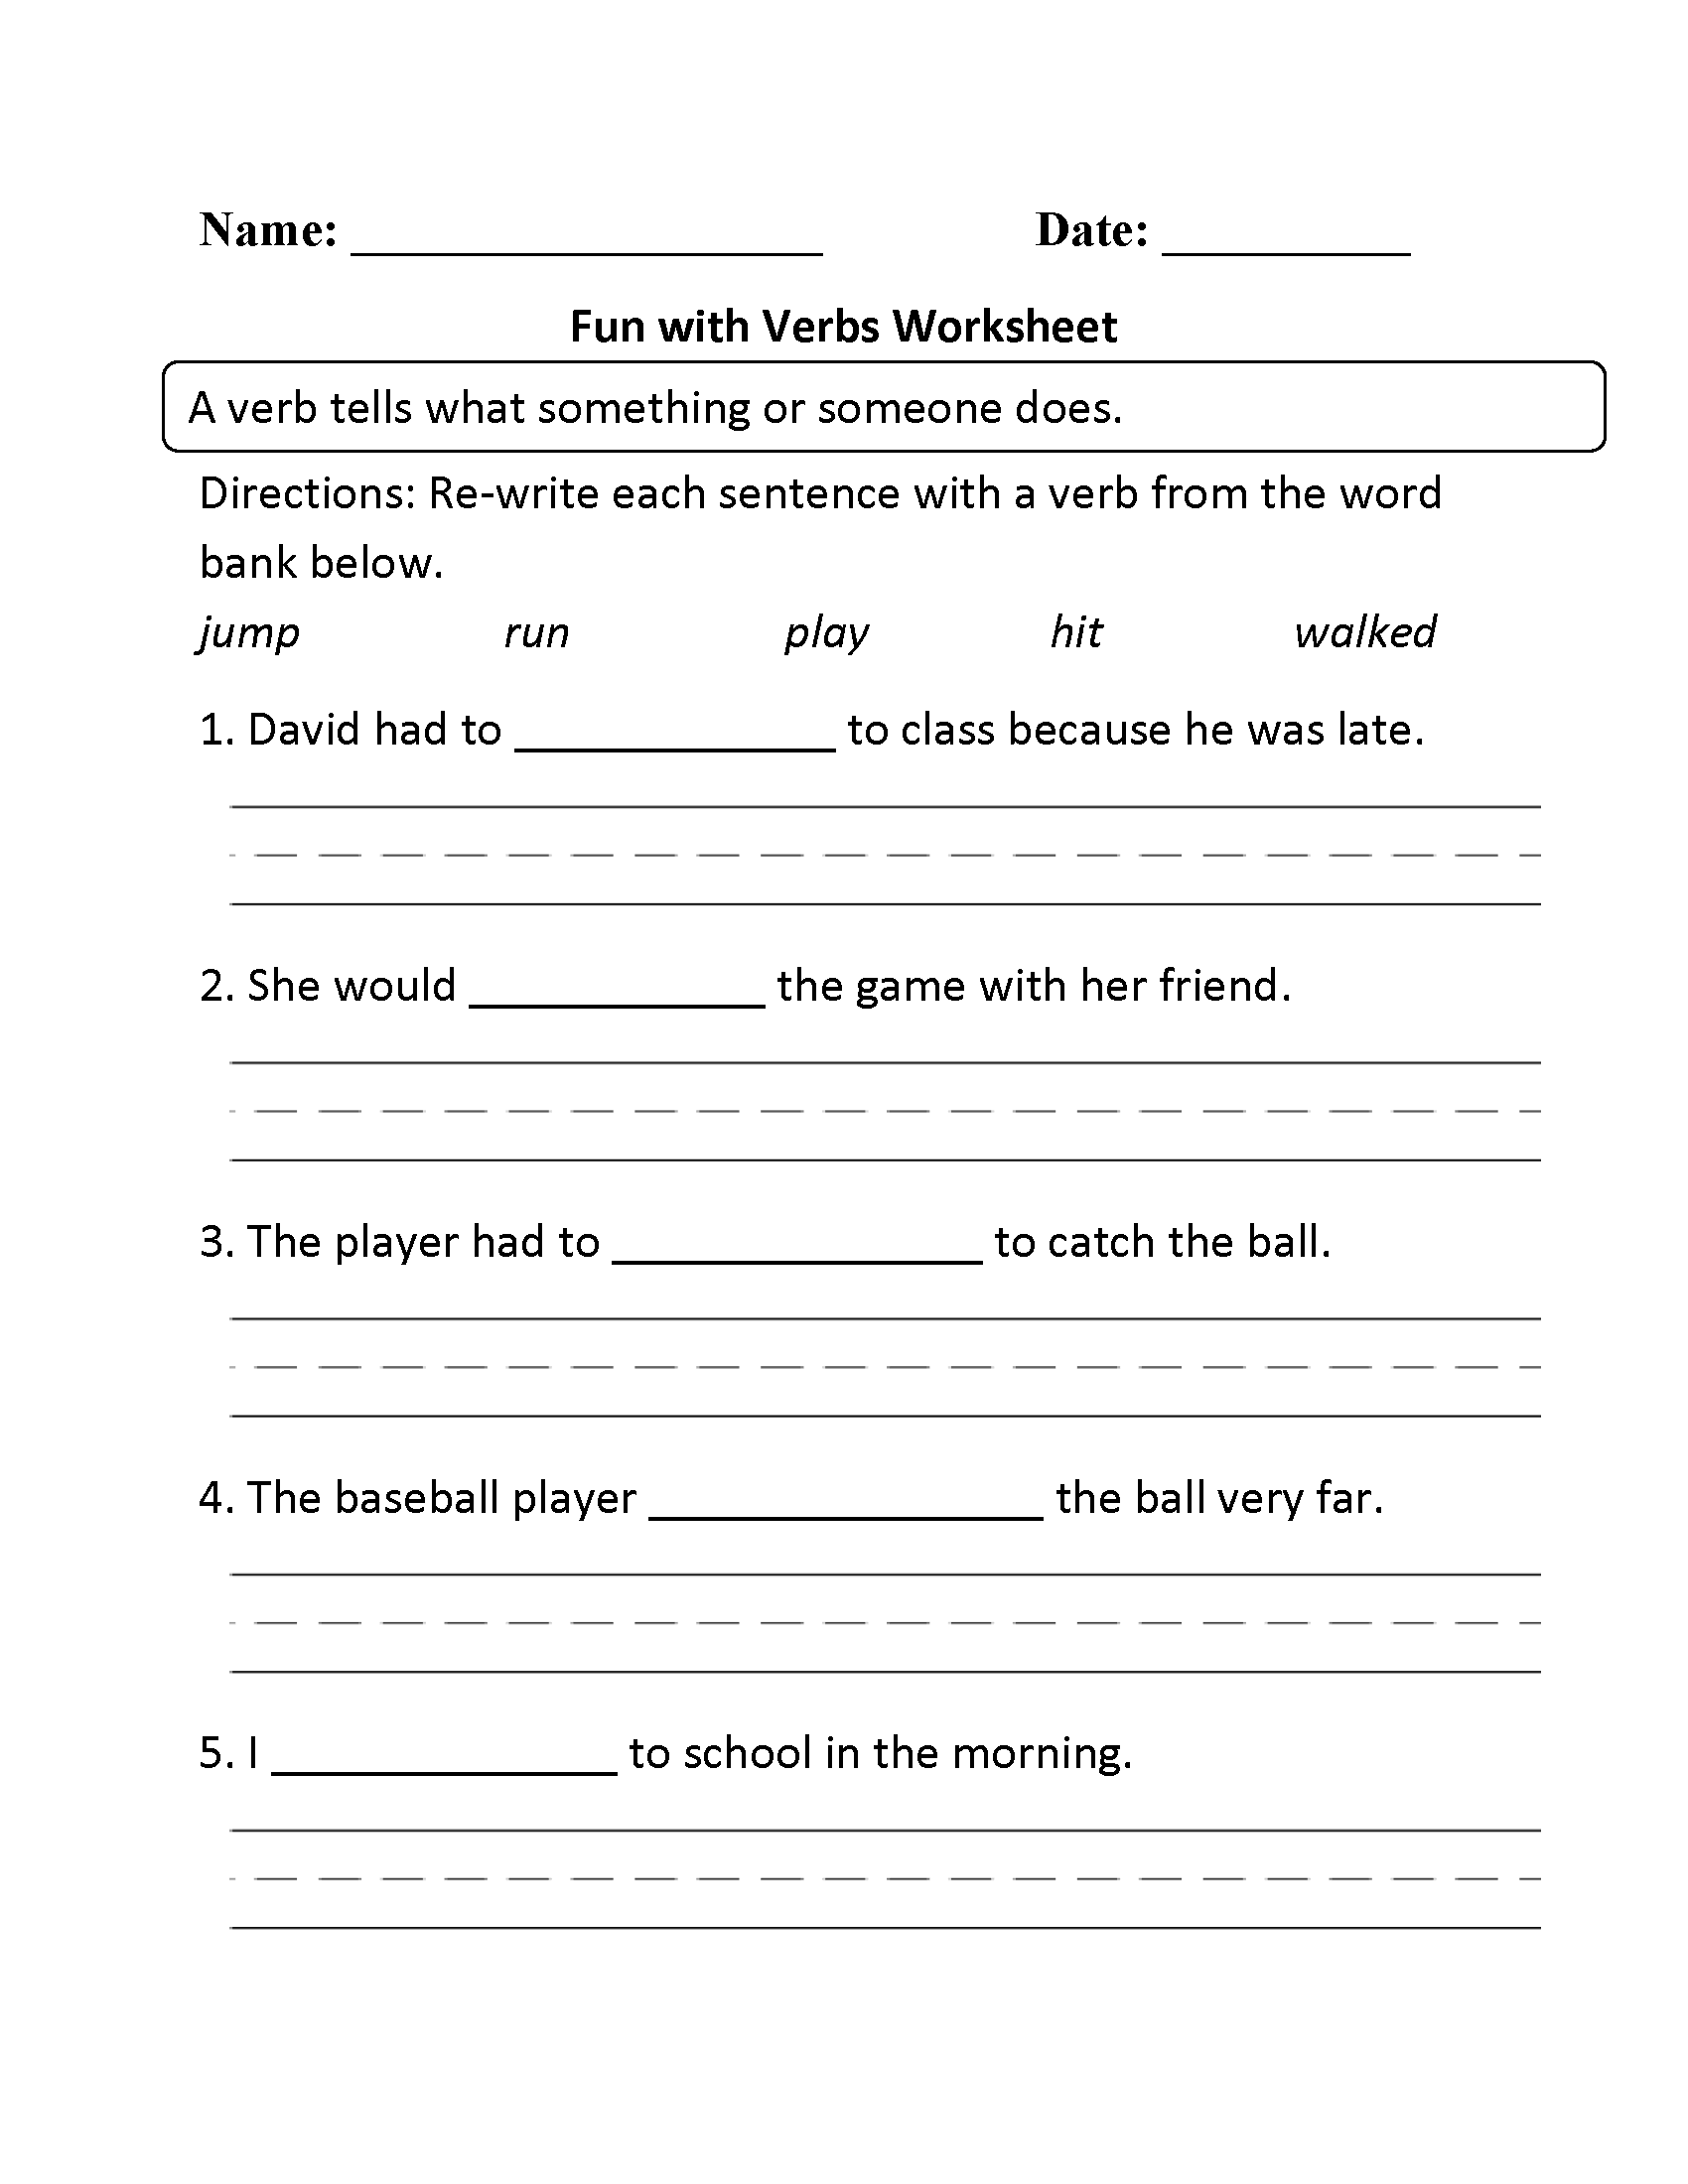 Fun With Verbs Worksheet